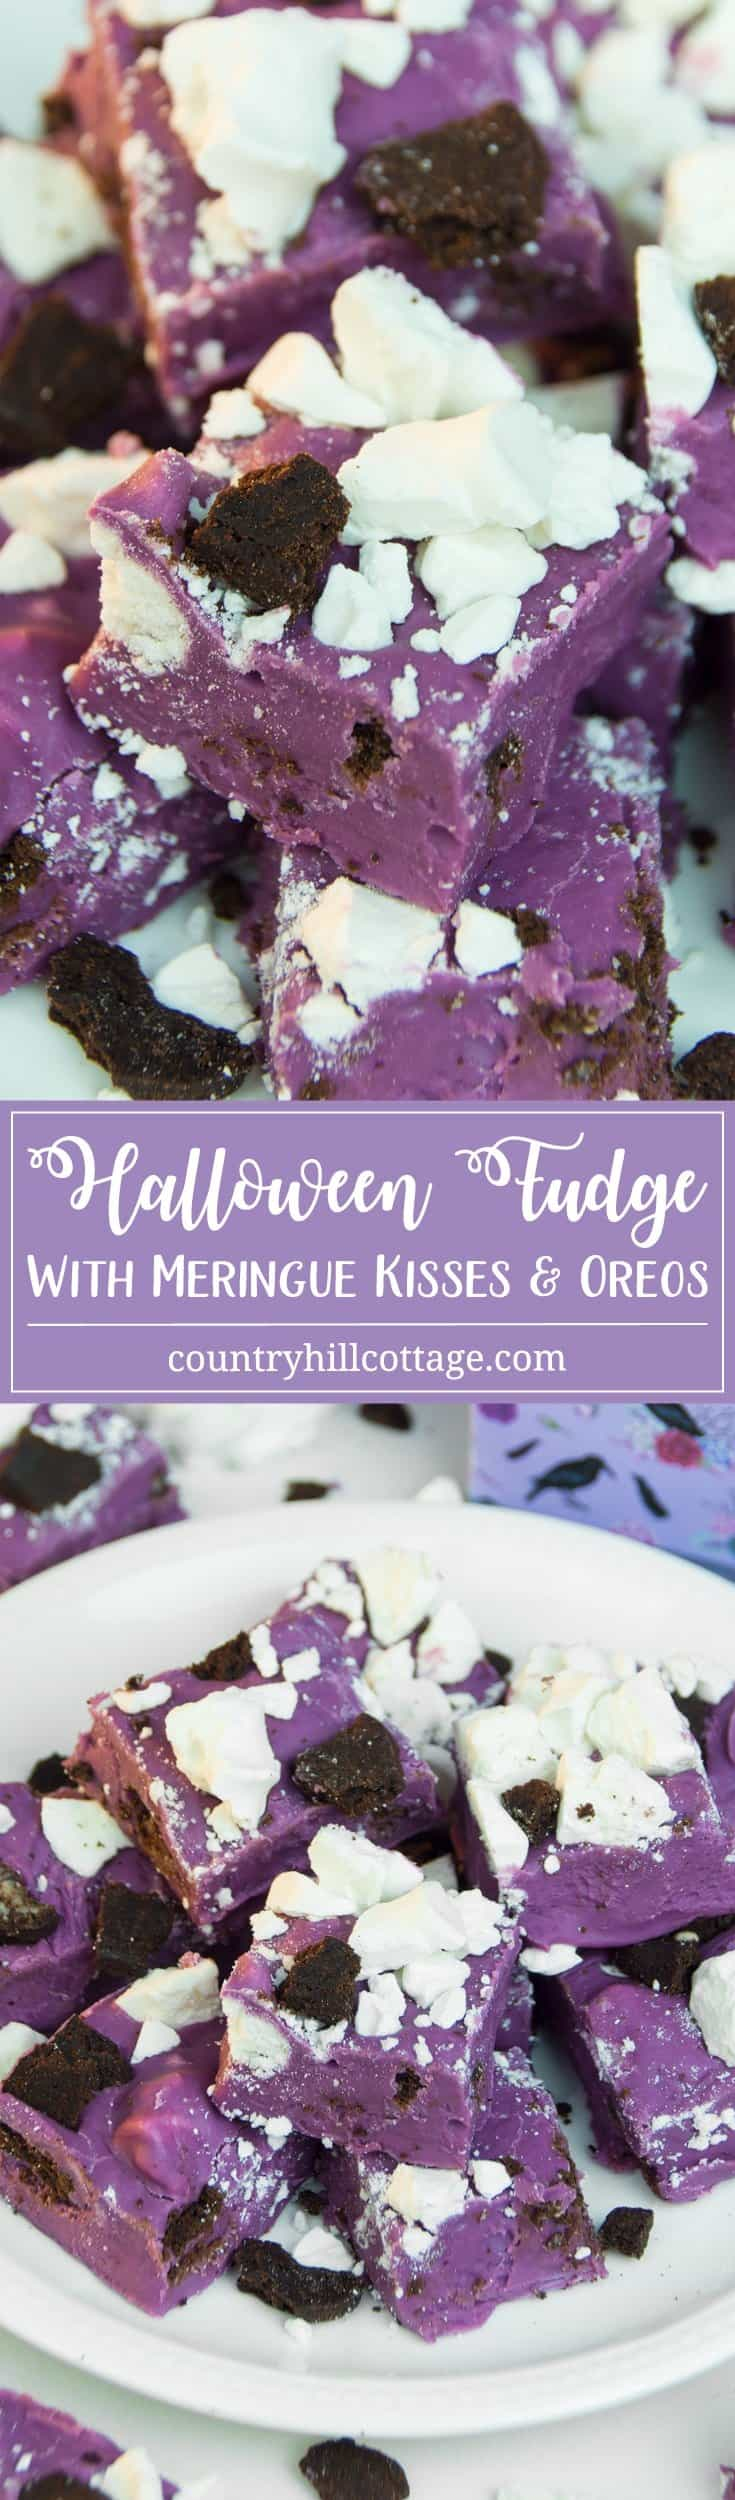 Our four-ingredient Halloween fudge is quick and easy to make and so ghoulishly delicious you might feel tempted to eat the entire batch yourself. We microwave sweetened condensed milk, and purple candy melts to make the fudge and use crushed meringue kisses and Oreos for garnishing. #Halloween #fudge #Oreos | countryhillcottage.com